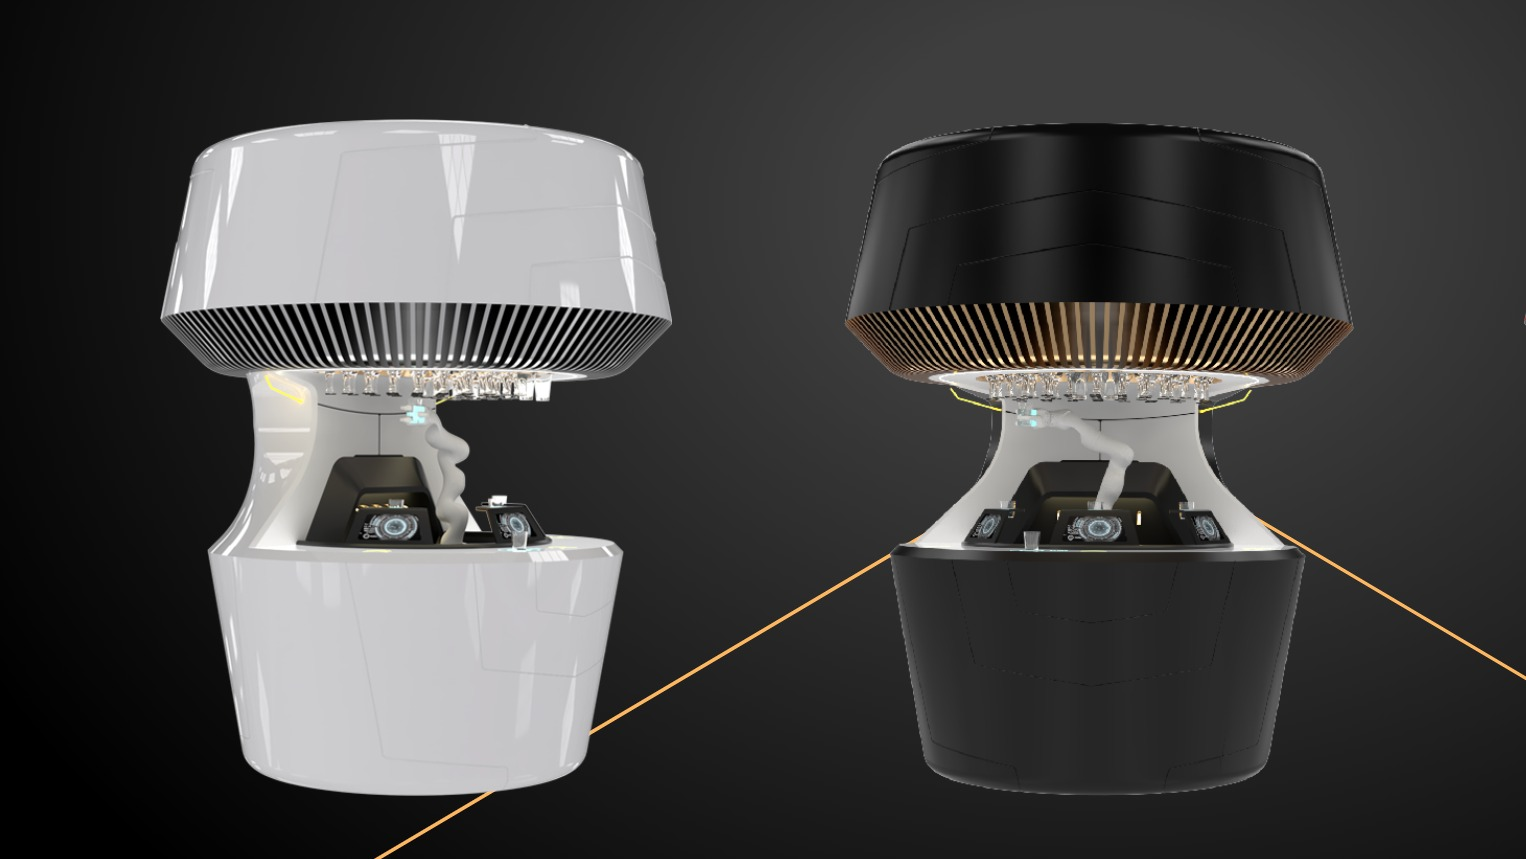 This Cocktail Mixing Robot Can Make 200 Drinks Per Hour